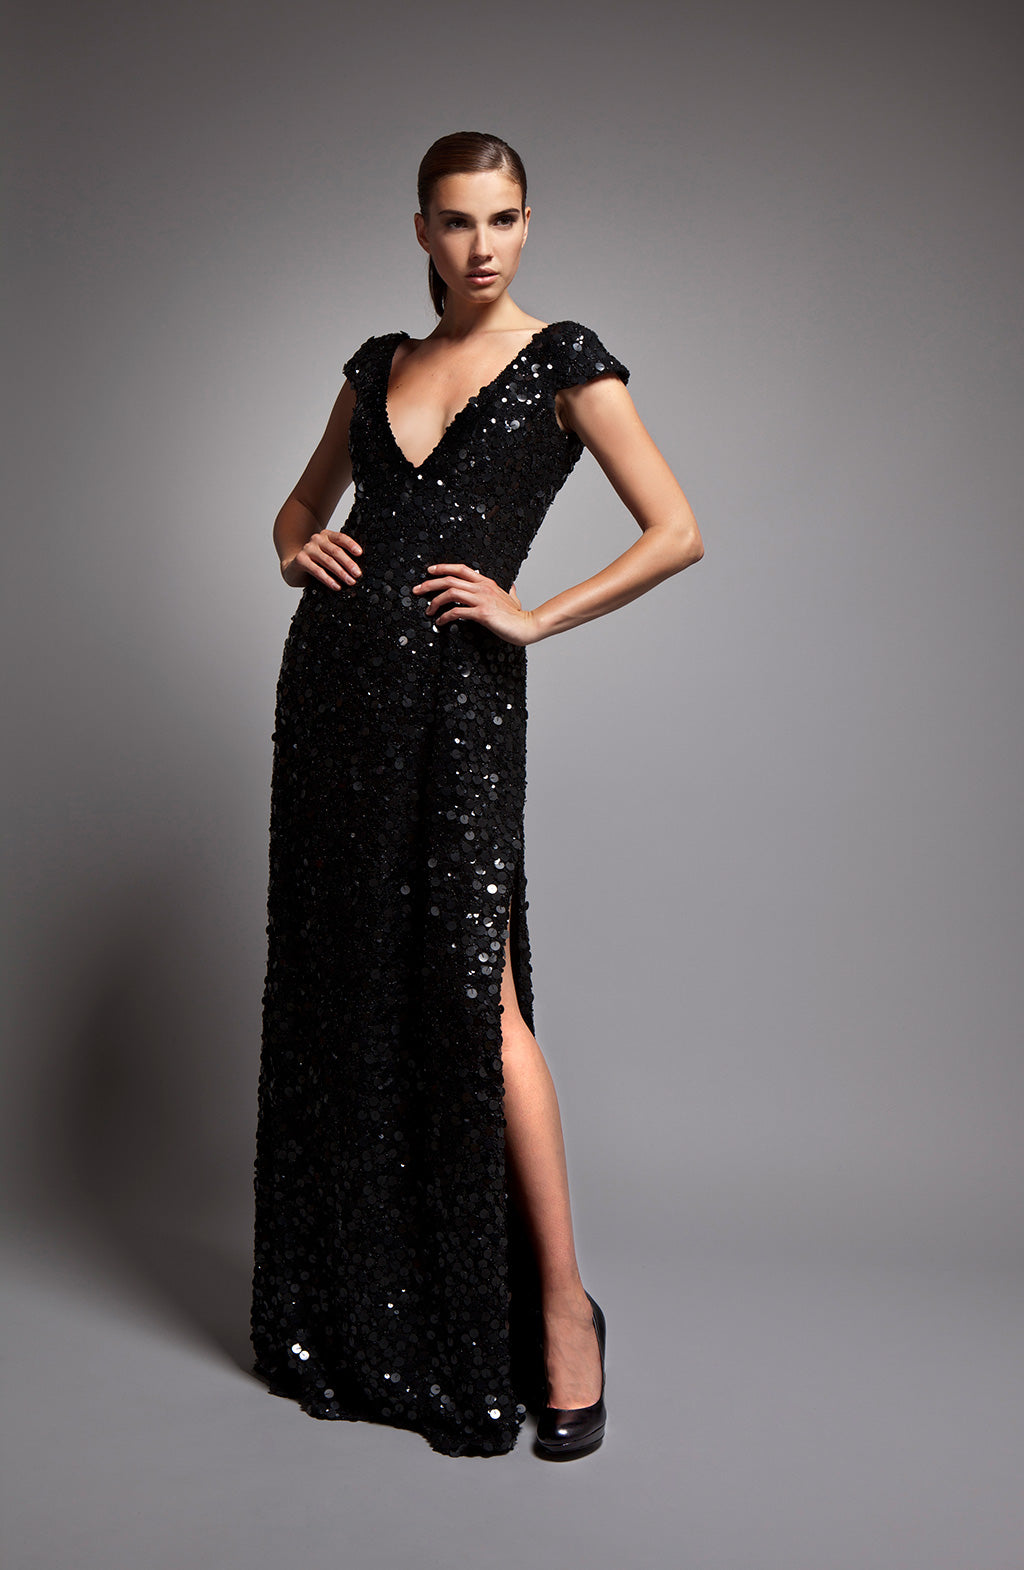 Jacqueline - Black sequin dress with deep v-neck and cap sleeve